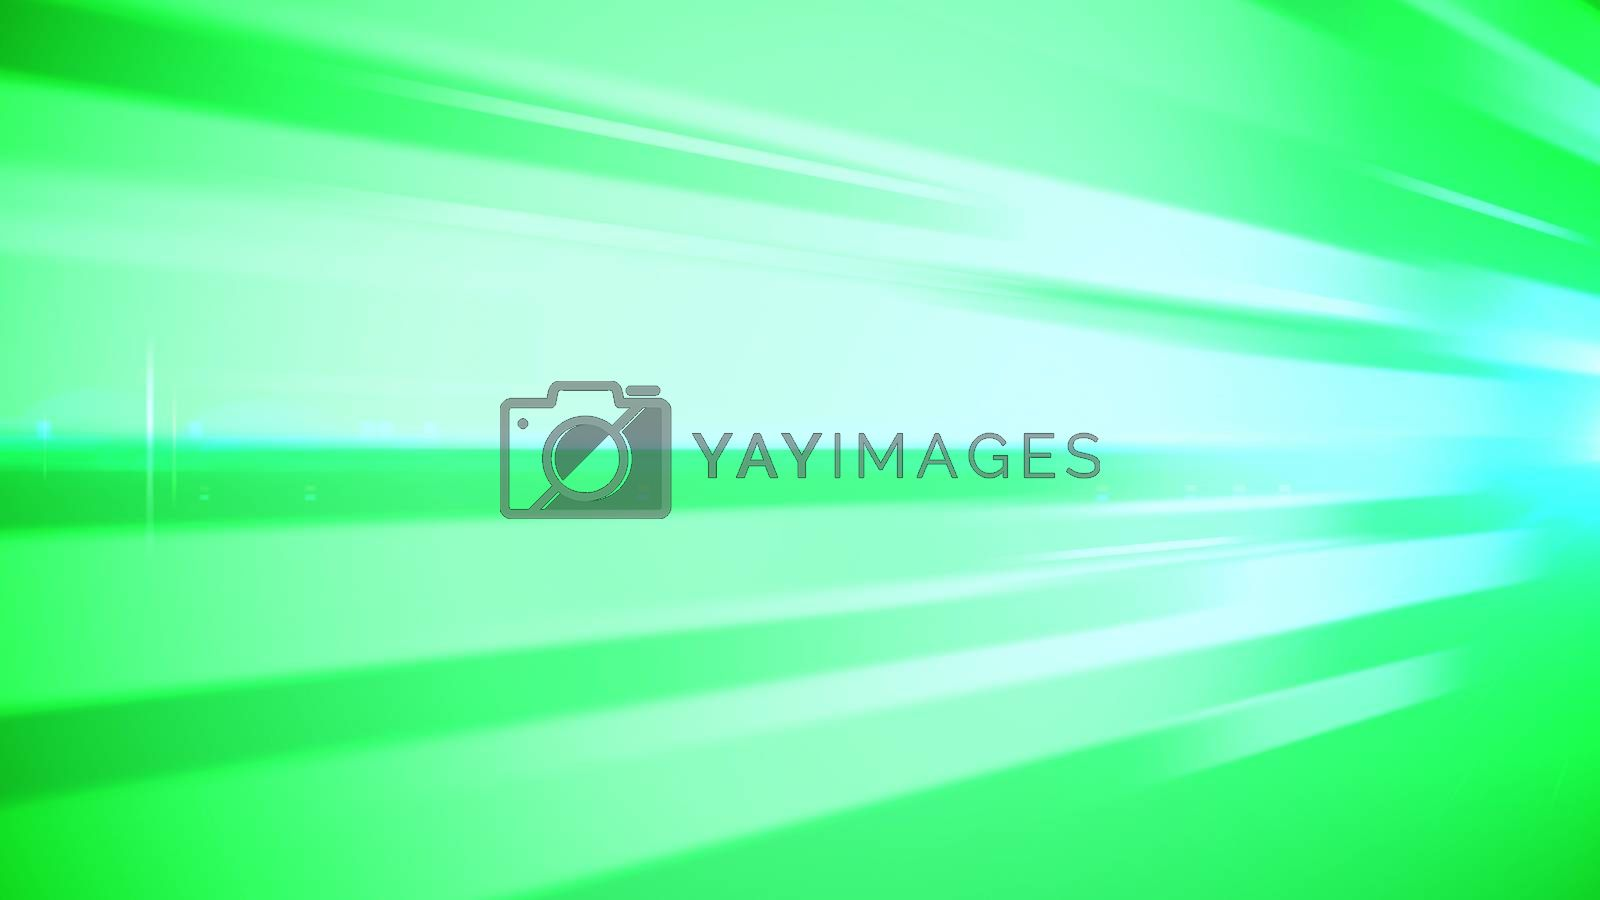 An inspiring 3d illustration of green, salad and white bar lines stirring people for flights of thought, noble and artistic decisions. The image has a psychodelic effect. It is placed askew.